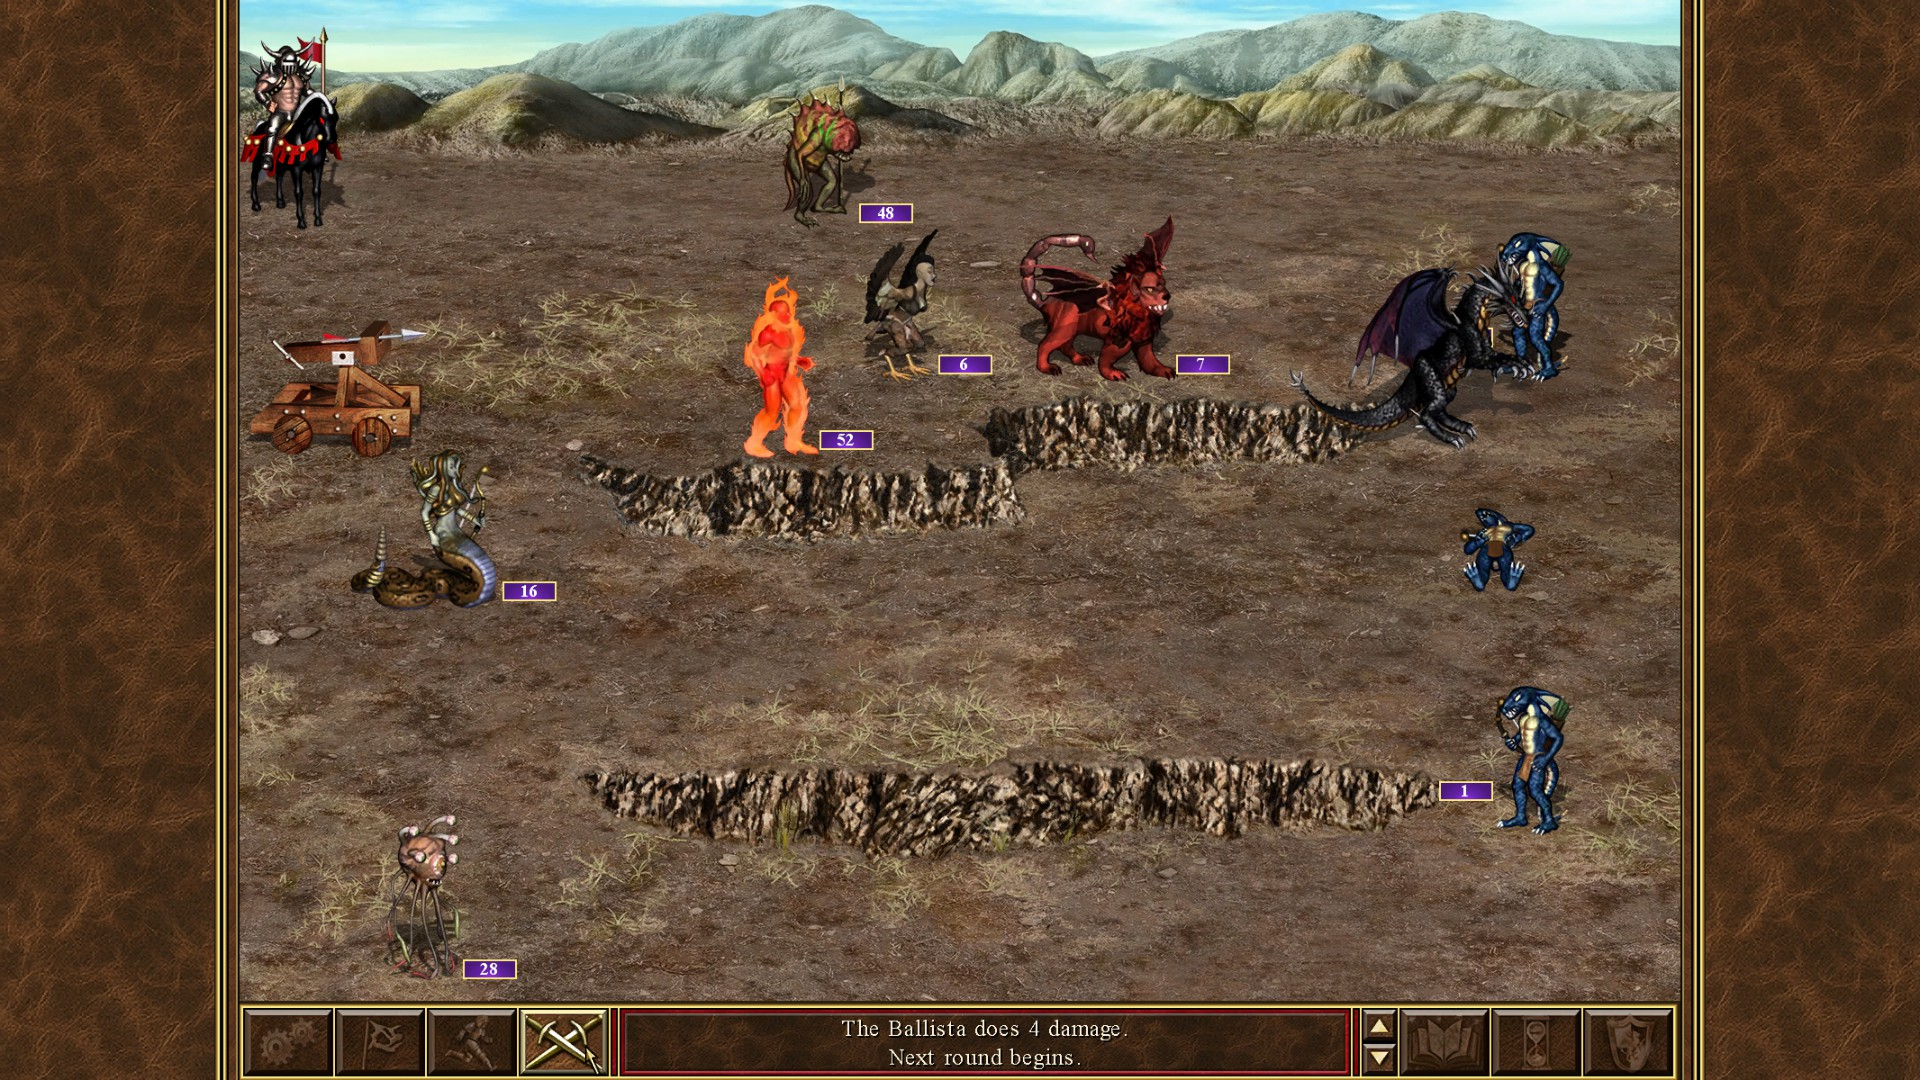 Heroes of Might and Magic 3 (RU/CIS activation; Steam)